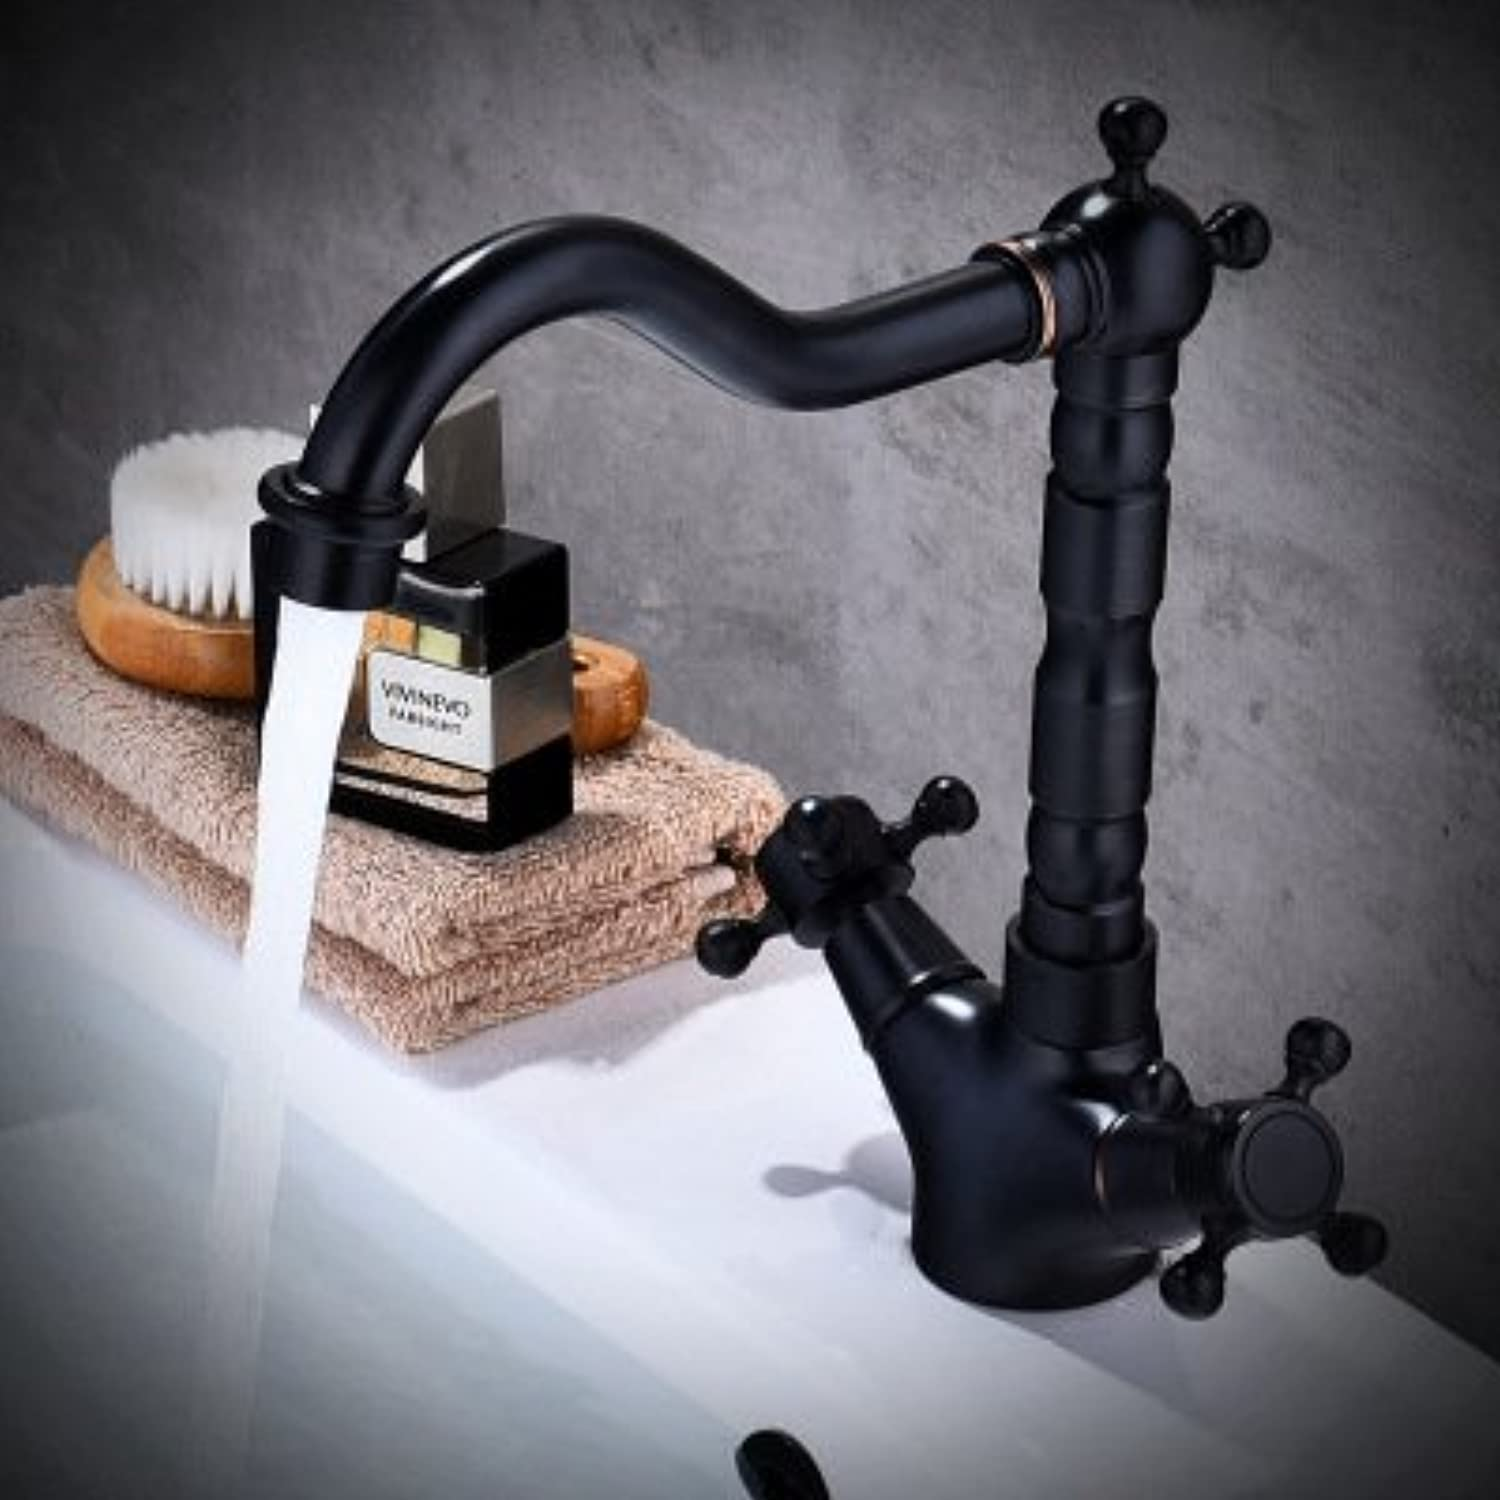 ERCZYO Black antique above counter basin faucet hot and cold wash basin copper bathroom washbasin mixing valve faucet (Size   Short)